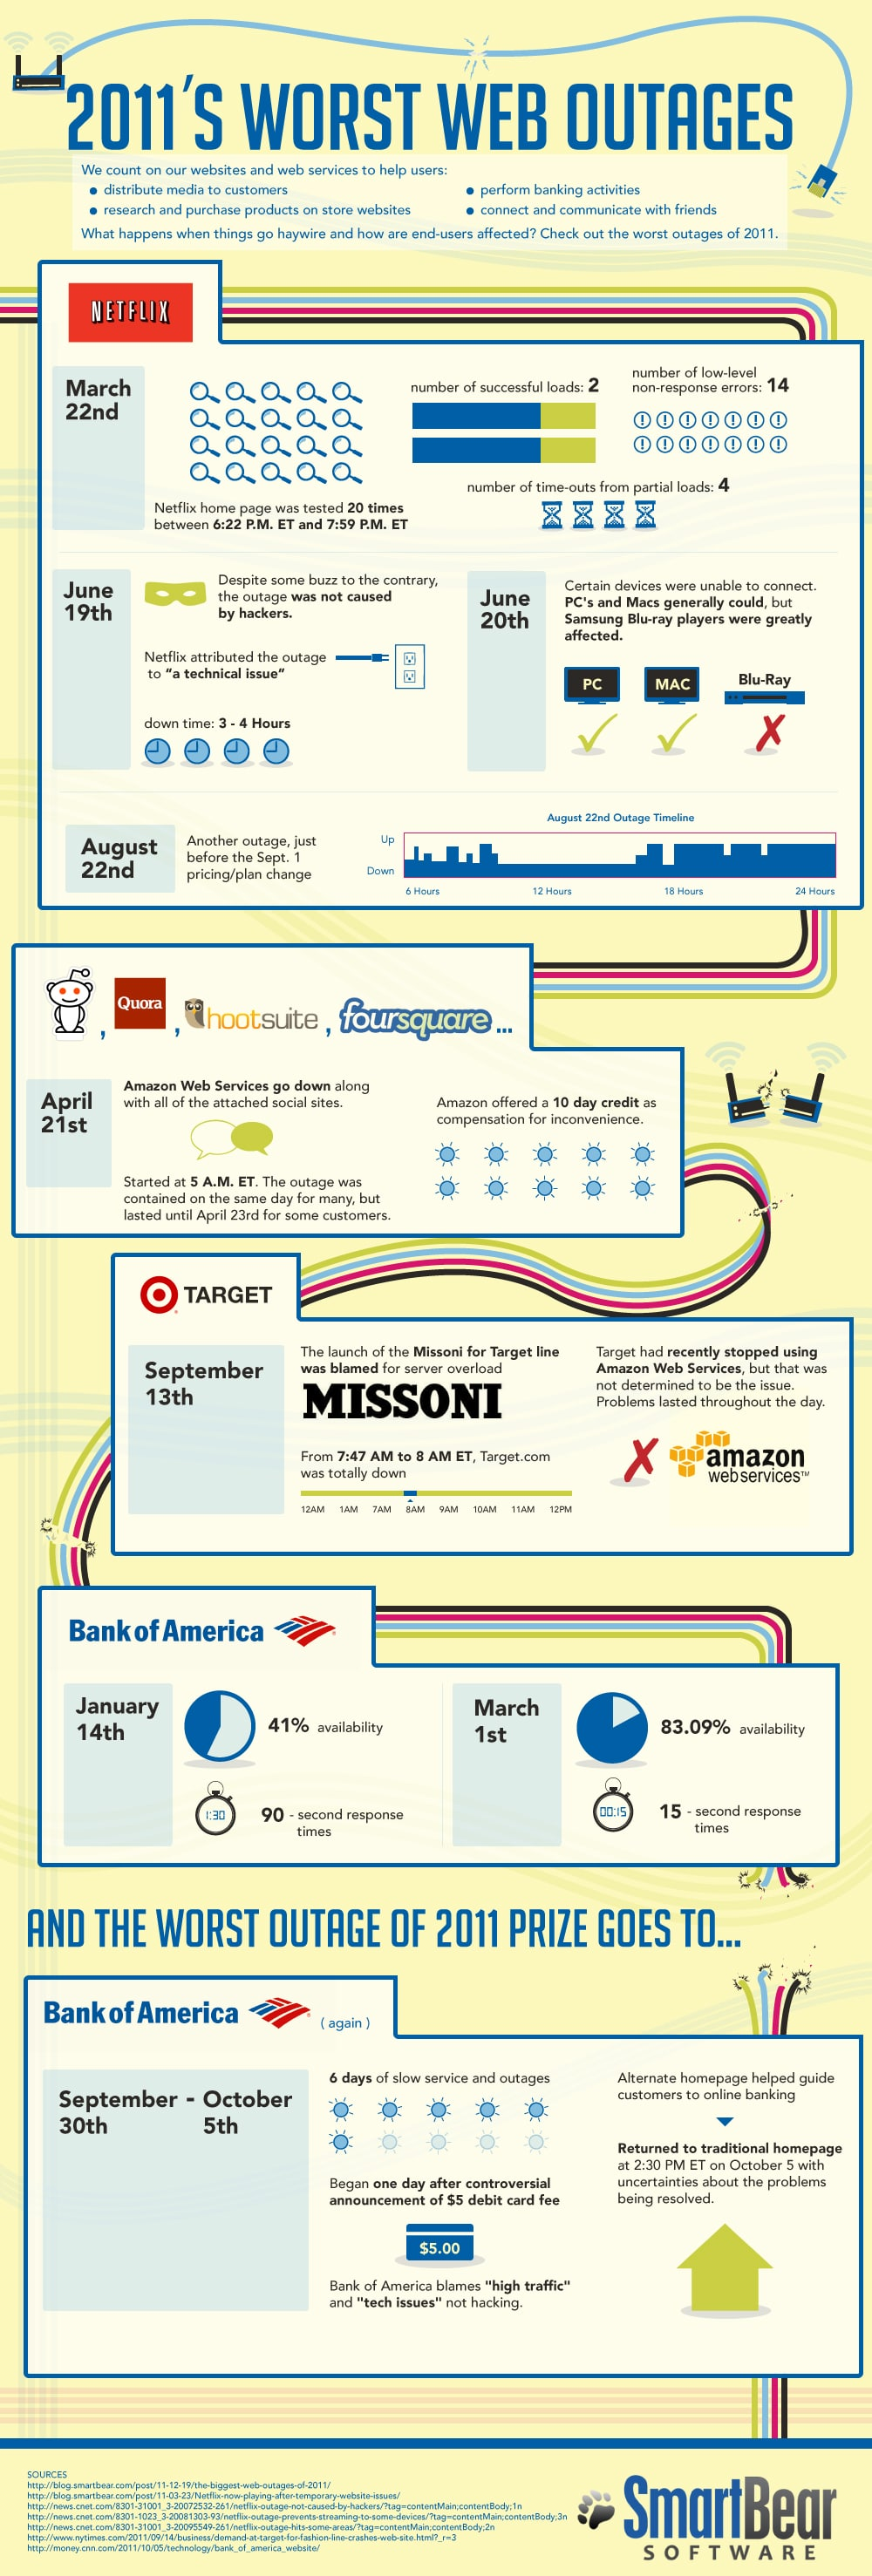 Worst Web Outages In 2011 [Infographic]